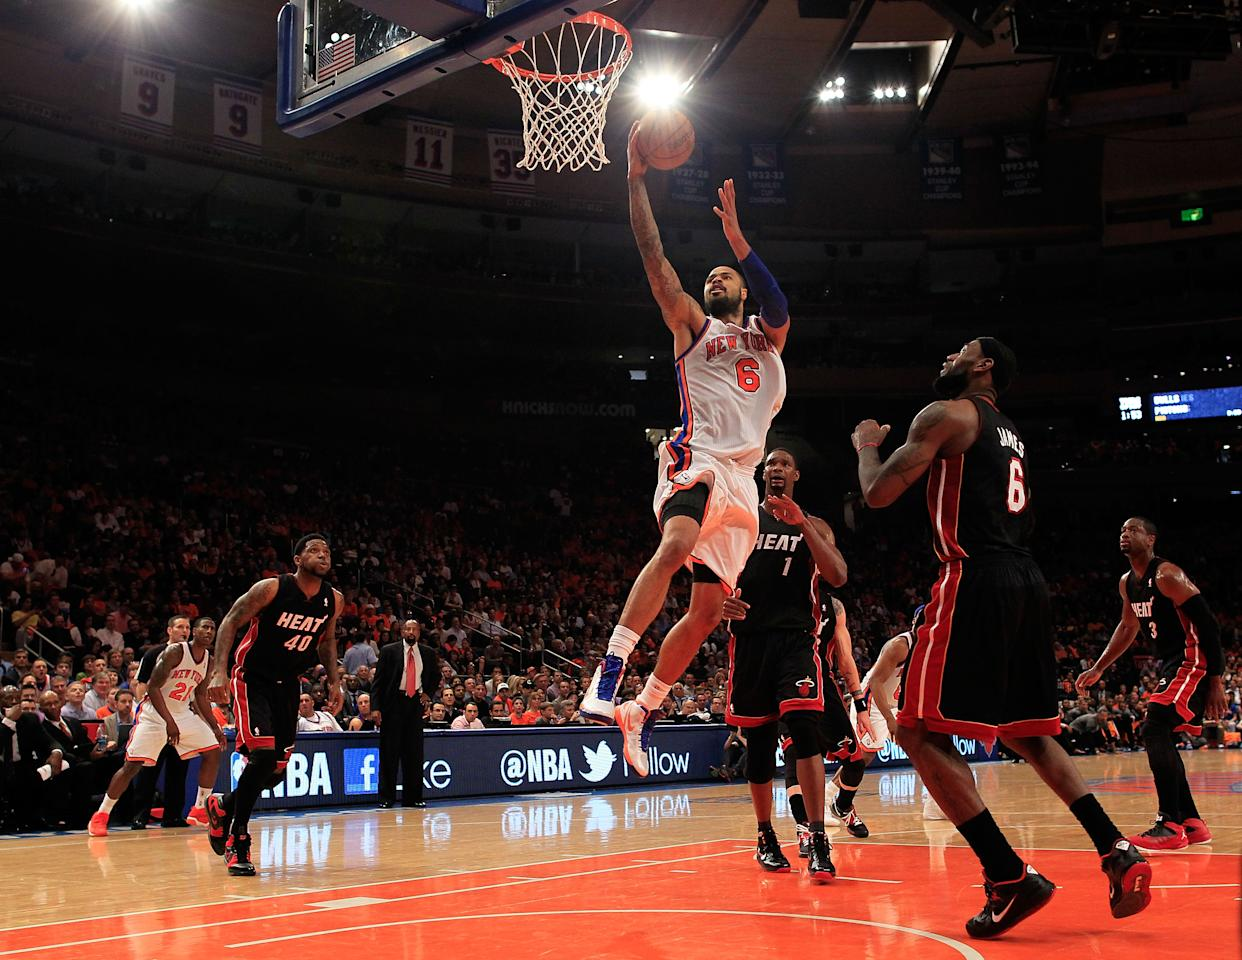 NEW YORK, NY - APRIL 15:  Tyson Chandler #6 of the New York Knicks lays the ball up past LeBron James #6 of the Miami Heat at Madison Square Garden on April 15, 2012 in New York City. NOTE TO USER: User expressly acknowledges and agrees that, by downloading and/or using this Photograph, user is consenting to the terms and conditions of the Getty Images License Agreement.  (Photo by Chris Trotman/Getty Images)